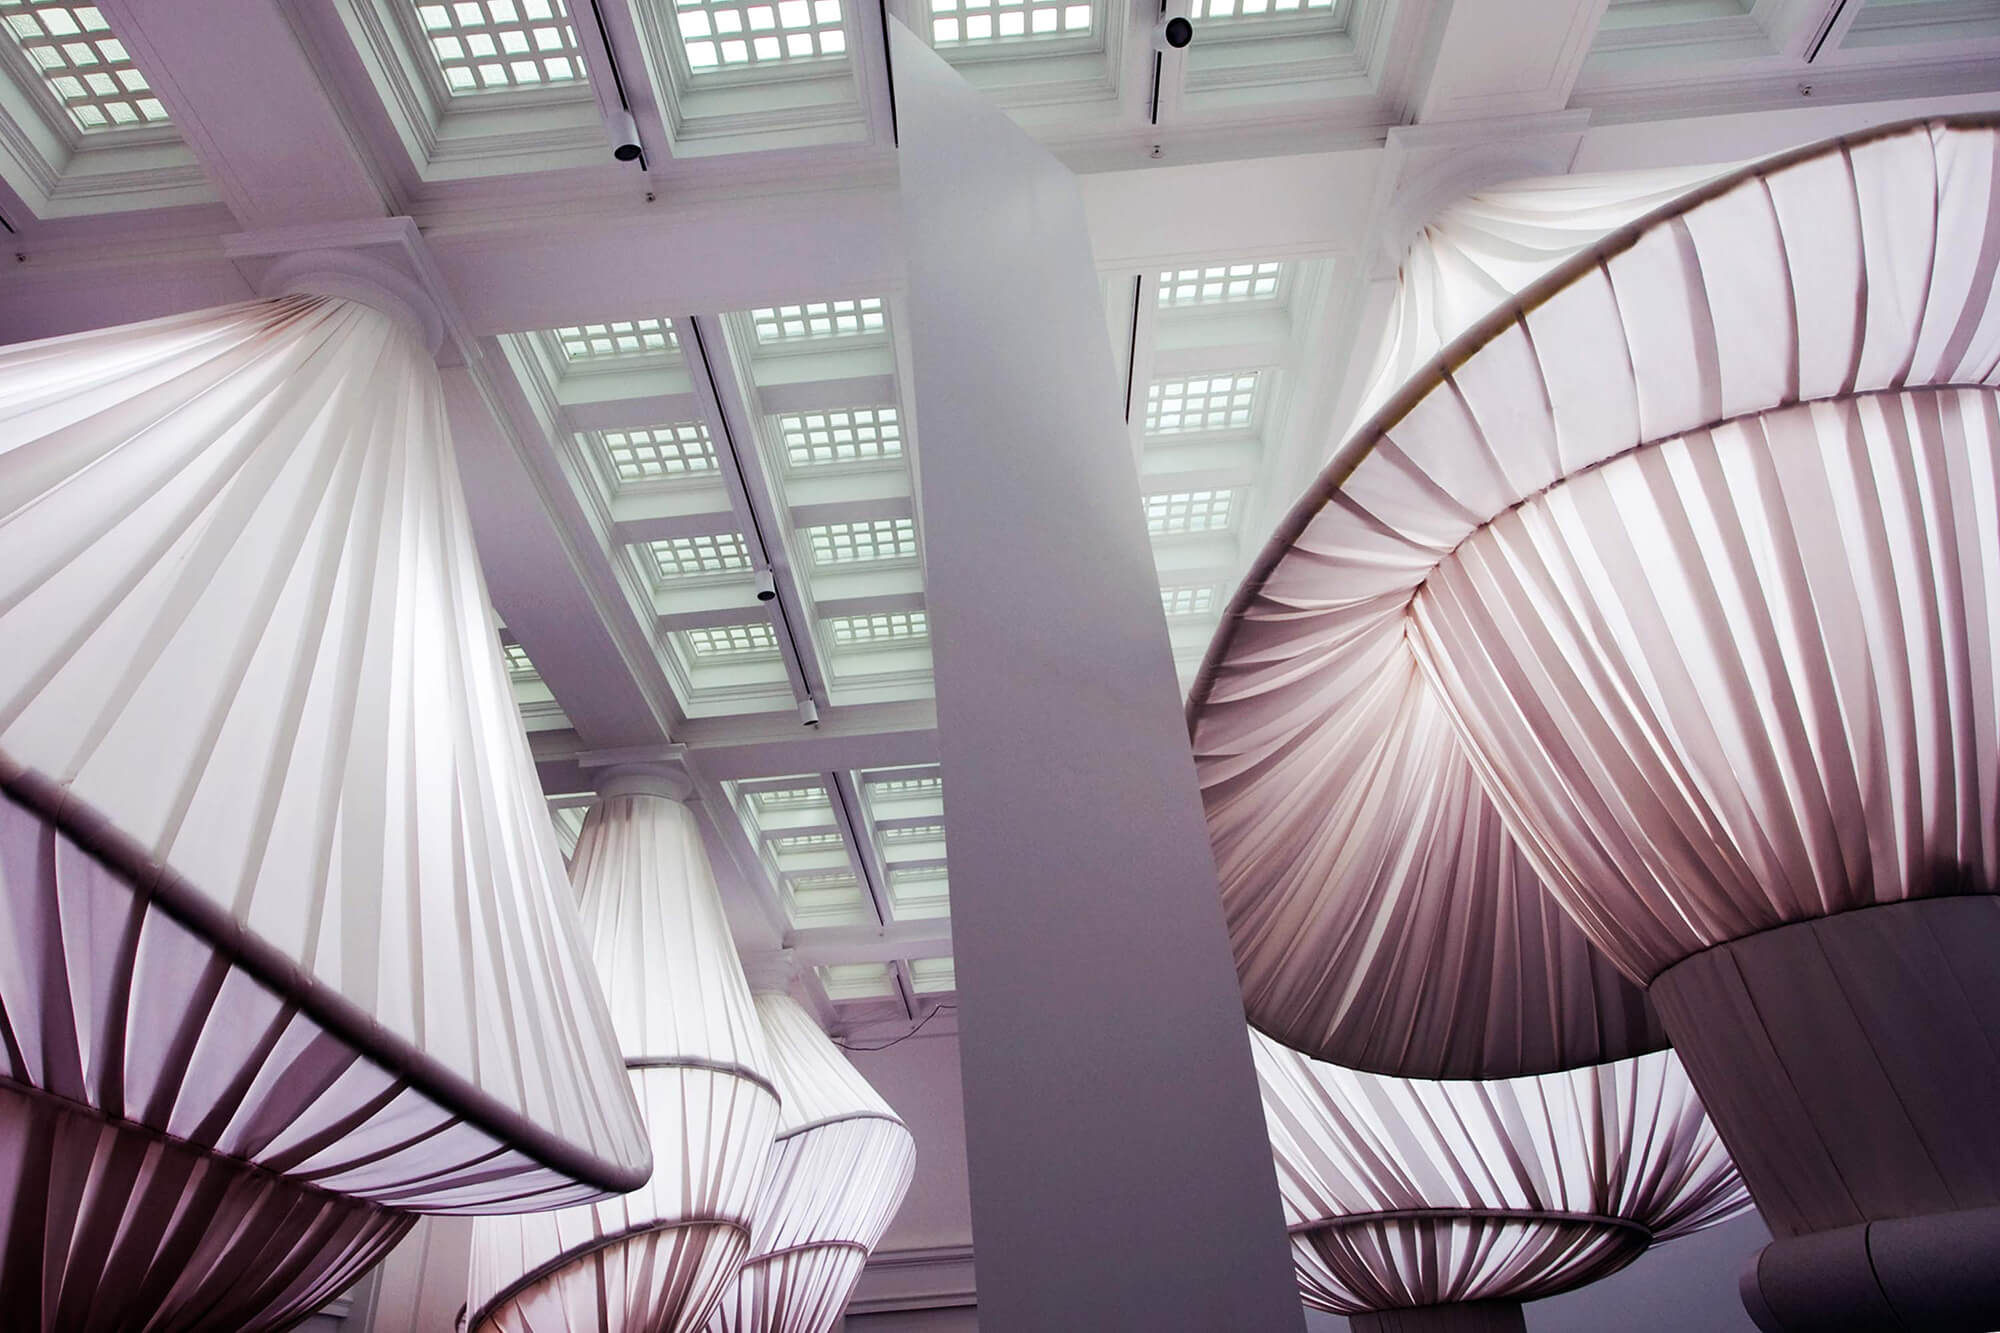 The reOrder exhibit at the Brooklyn Museum featuring 2000 yards of Sunbrella fabrics